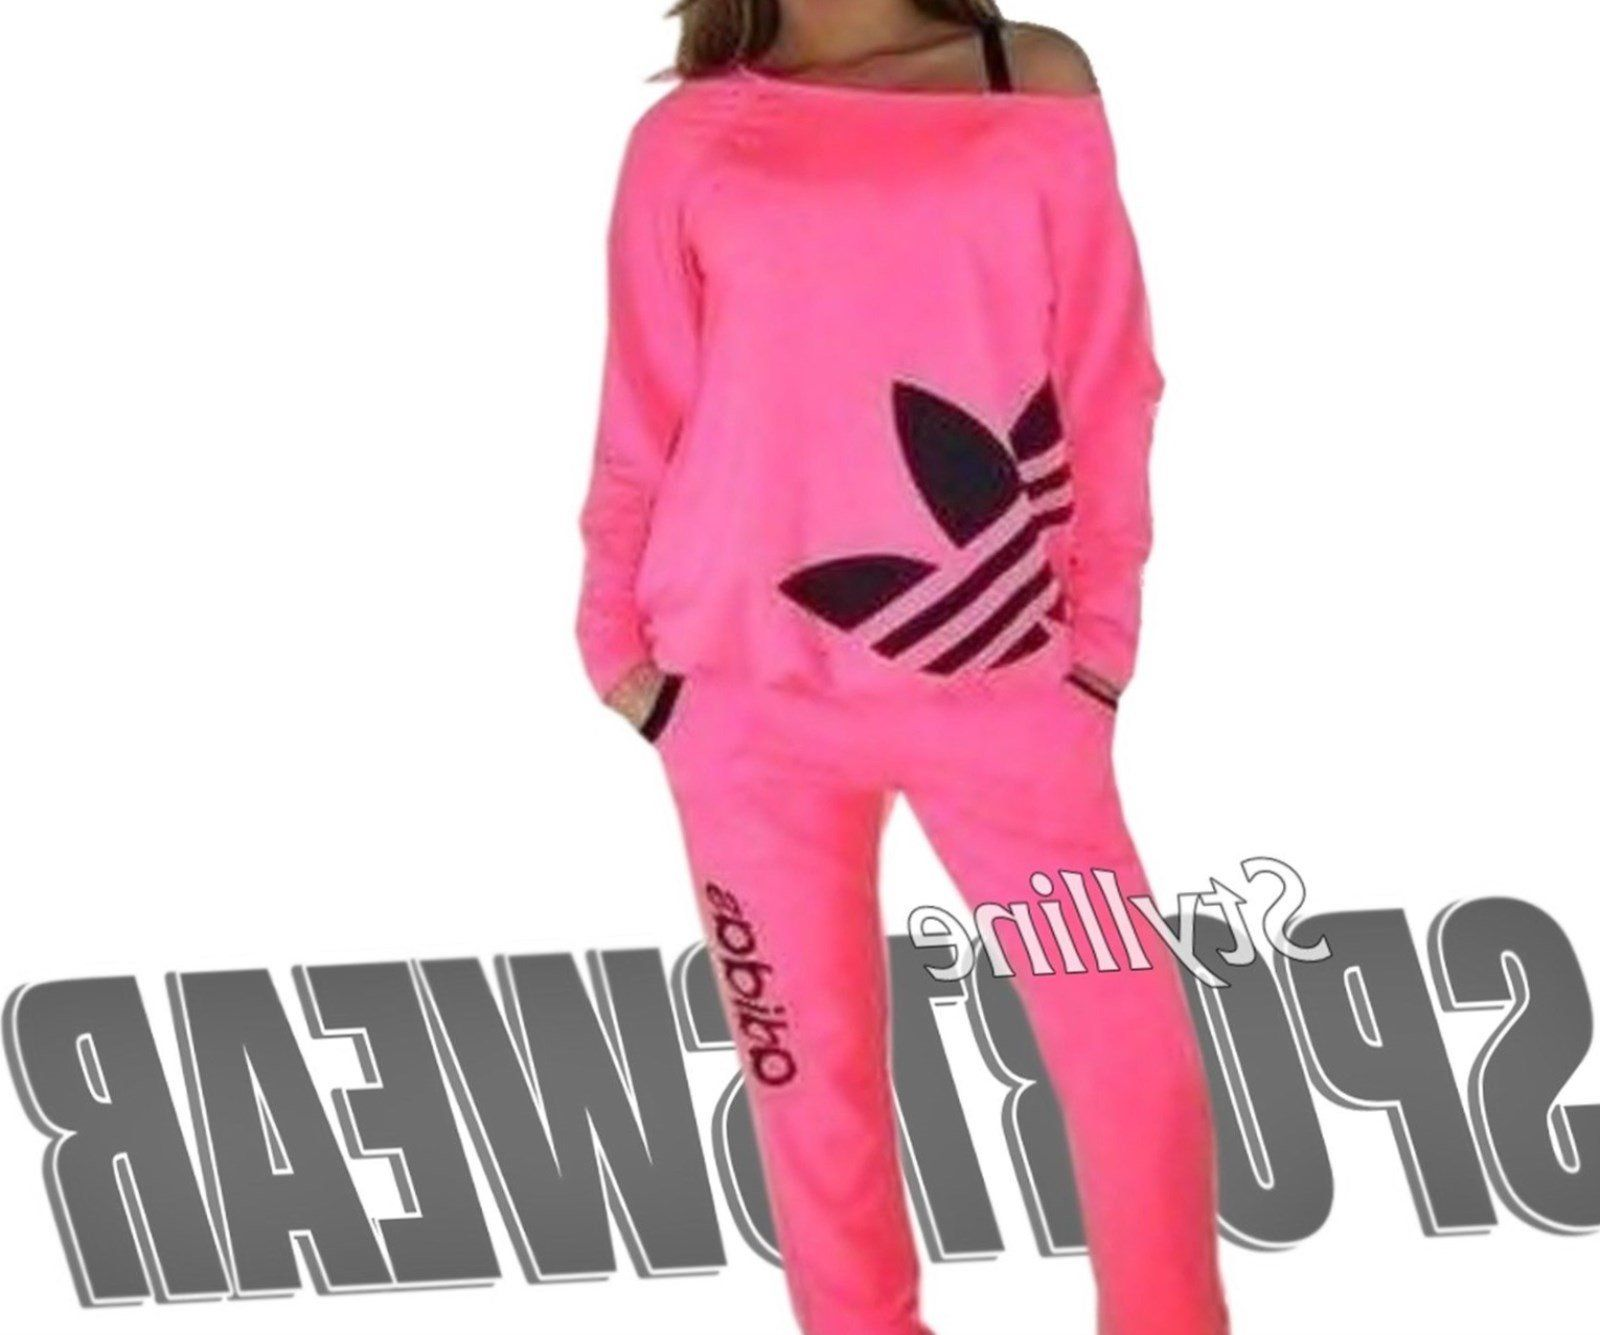 Adidas trainingsanzug damen schwarz pink. in 2019 | Adidas